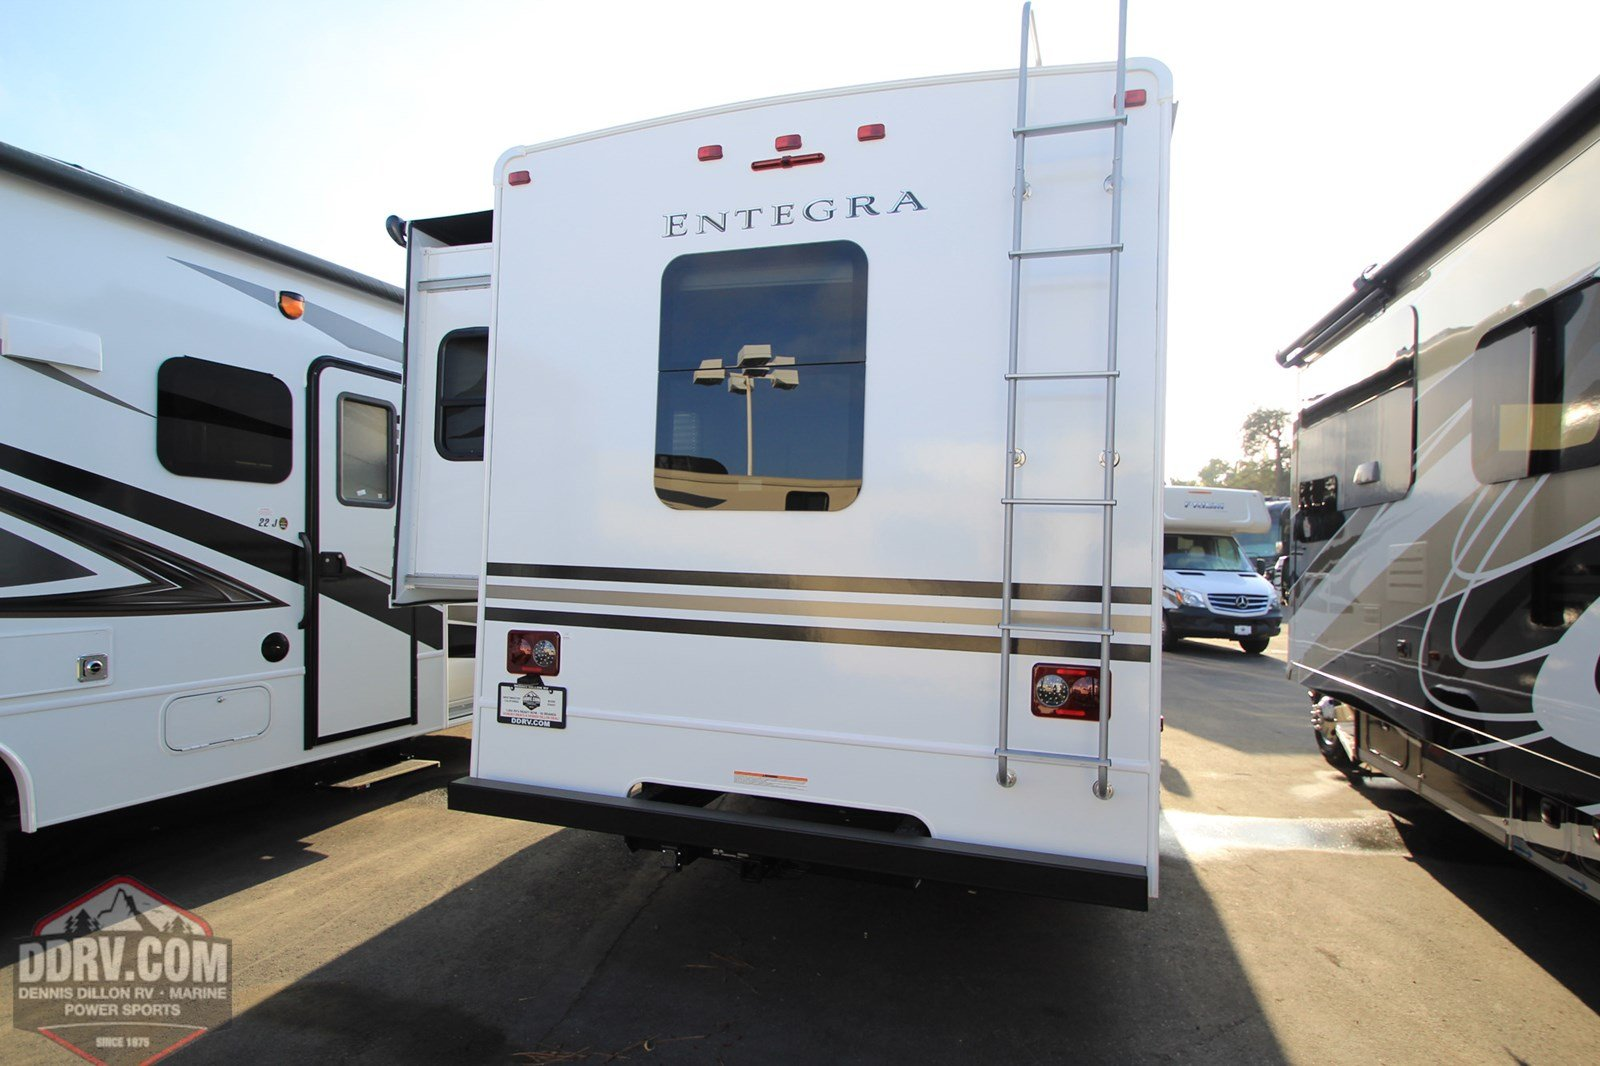 New 2019 Entegra Odyssey 29v Specialty Vehicle In Boise